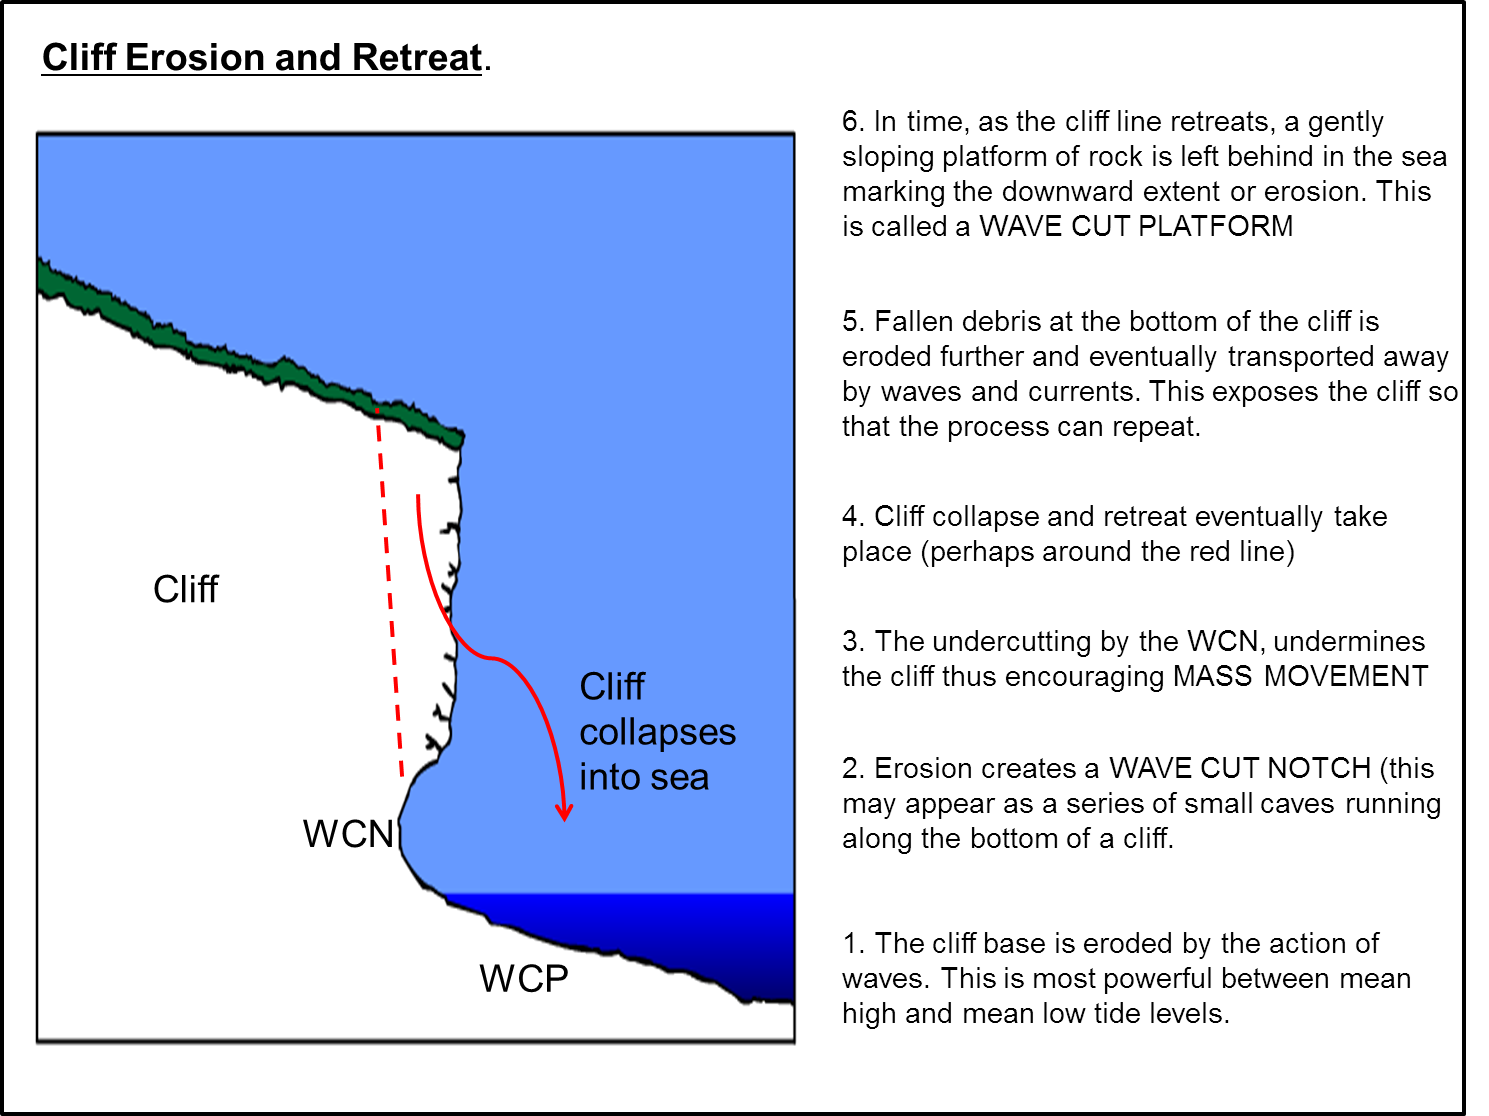 wave cut platform diagram leagoo lead 6 battery geogblogdno y11 coastal management